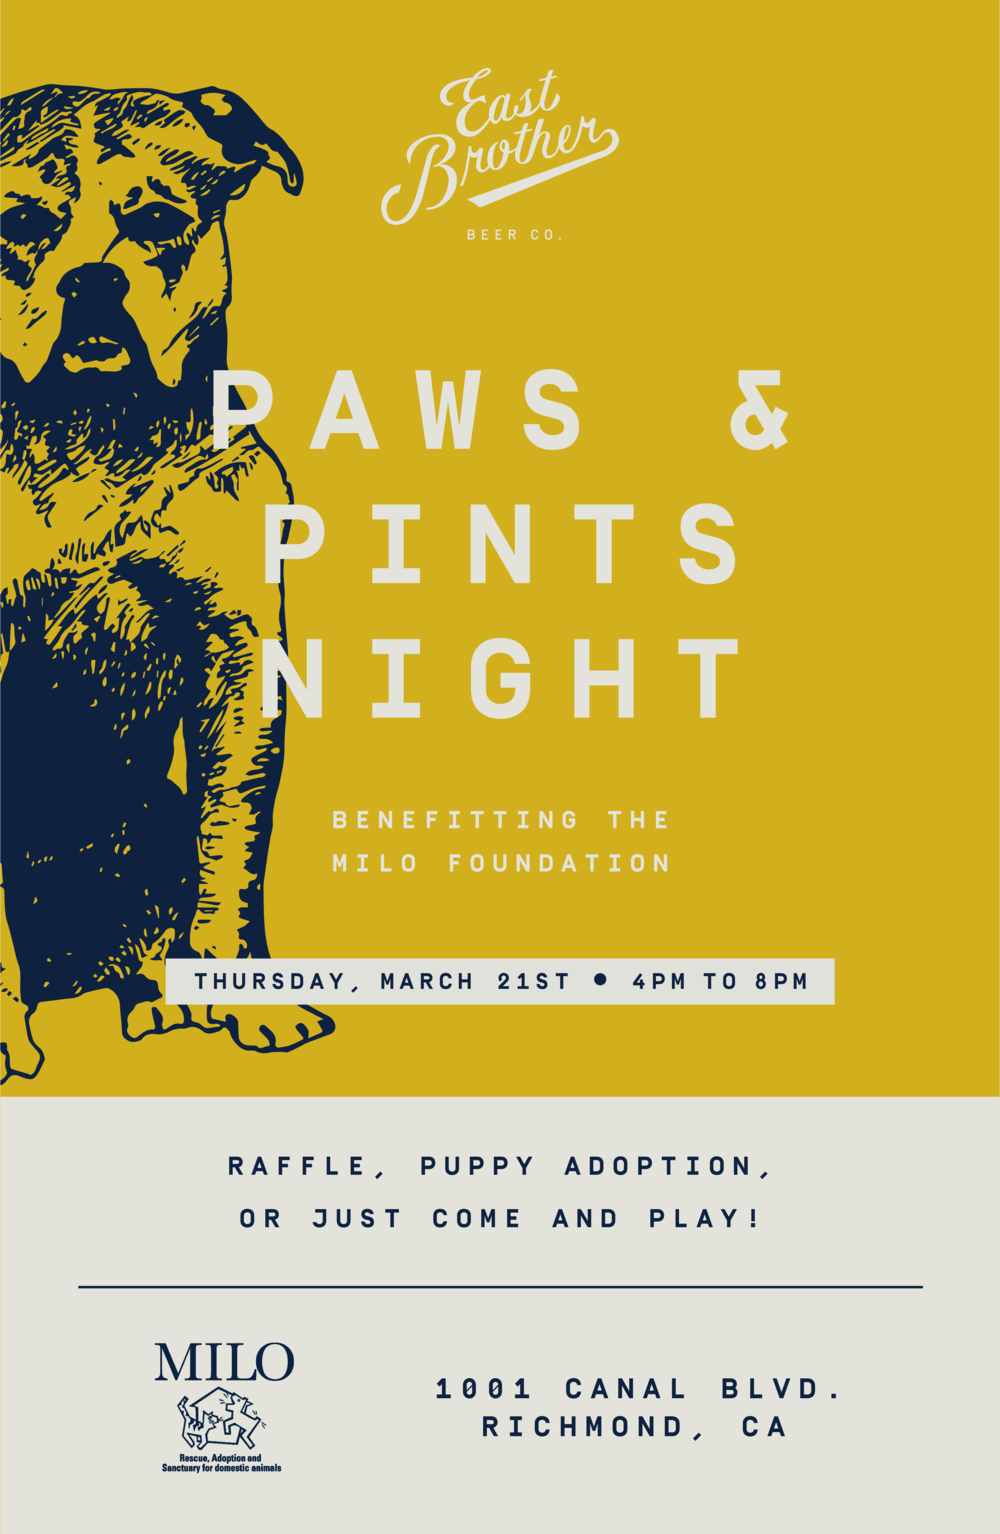 EB_PawsNPints_Poster.png